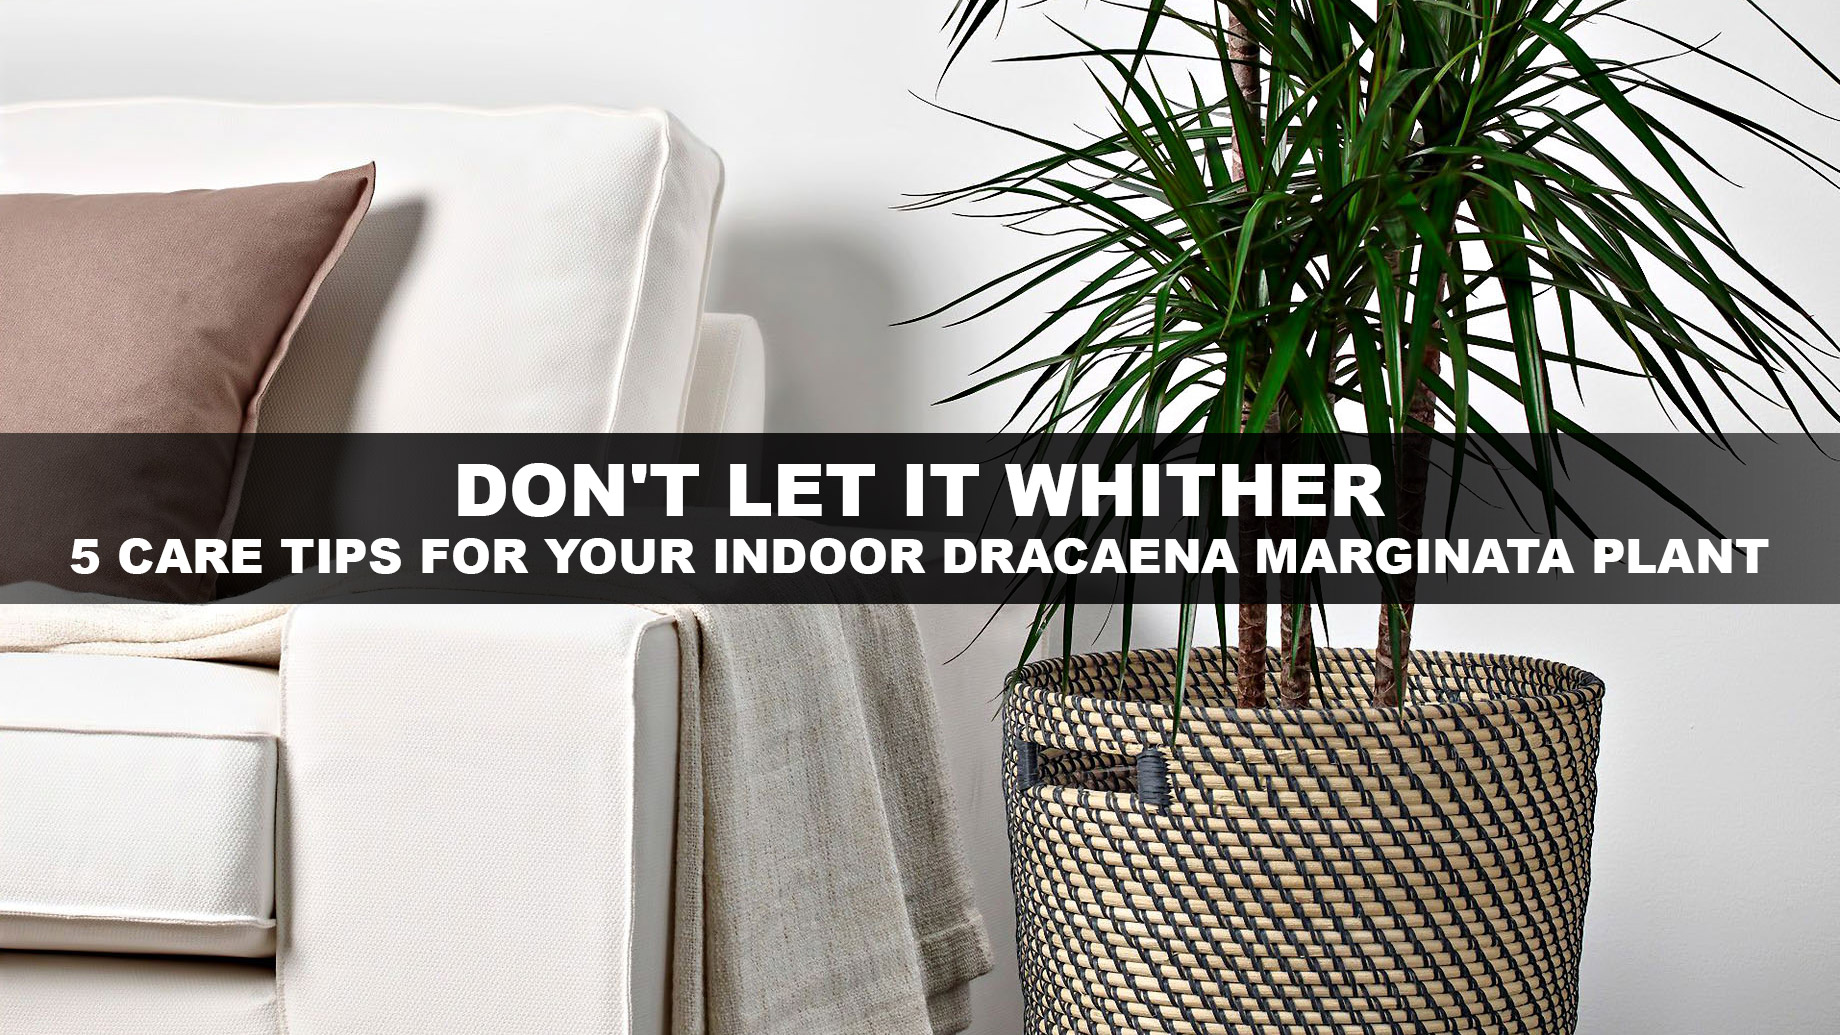 Don't Let it Whither - 5 Care Tips for Your Indoor Dracaena Marginata Plant